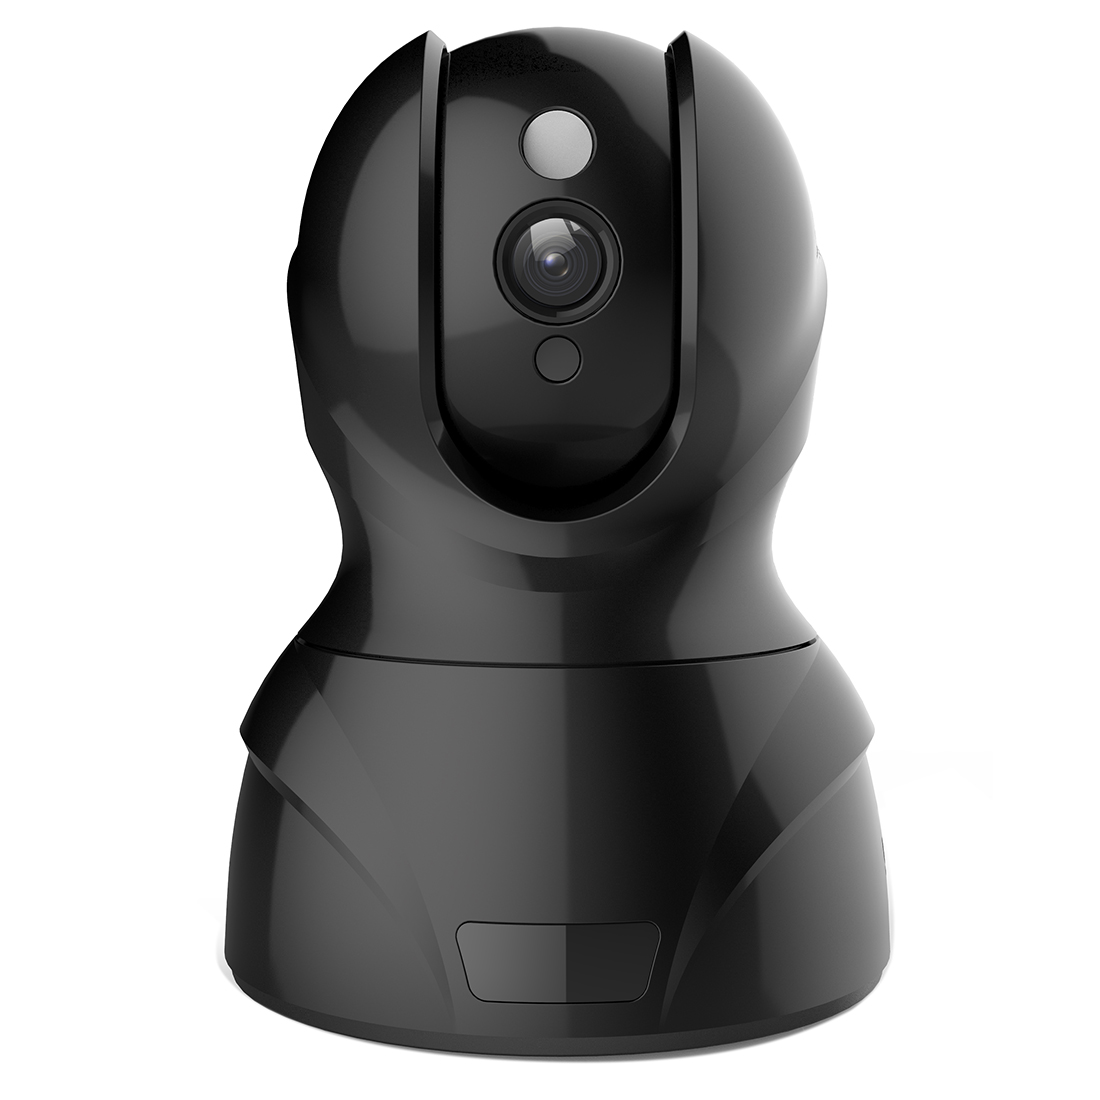 HD 1080P Wireless Wifi Network IP Security Camera, Baby Monitor, Night Vision, Remote Surveillance Video, Motion detectionHD 1080P Wireless Wifi Network IP Security Camera, Baby Monitor, Night Vision, Remote Surveillance Video, Motion detection